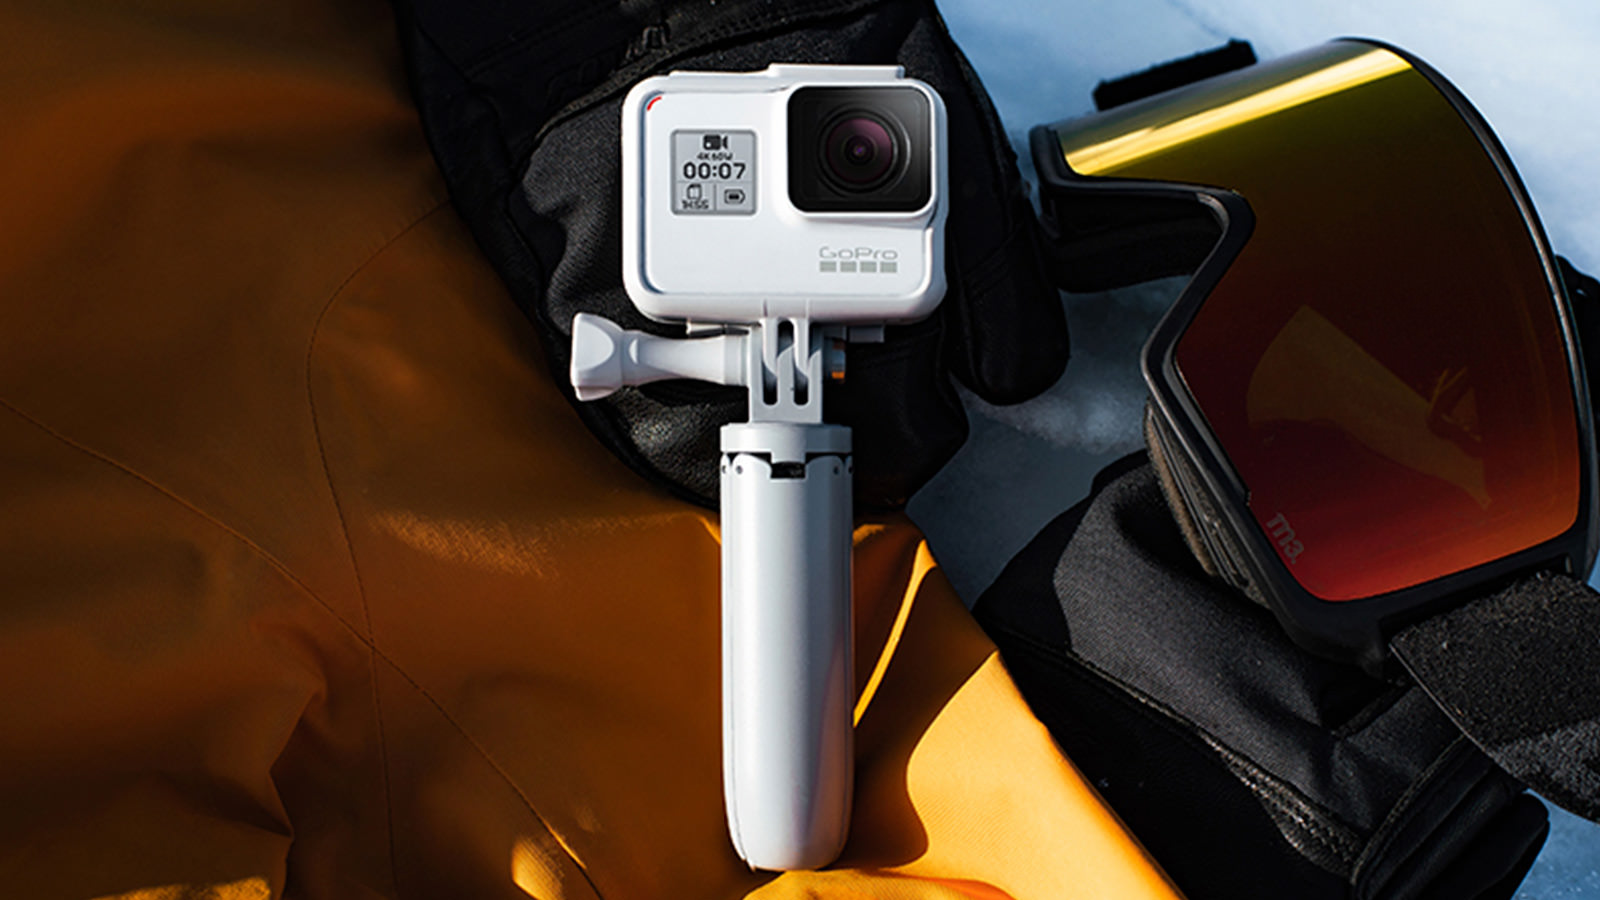 GoPro HERO7 Black Dusk White Limited Edition